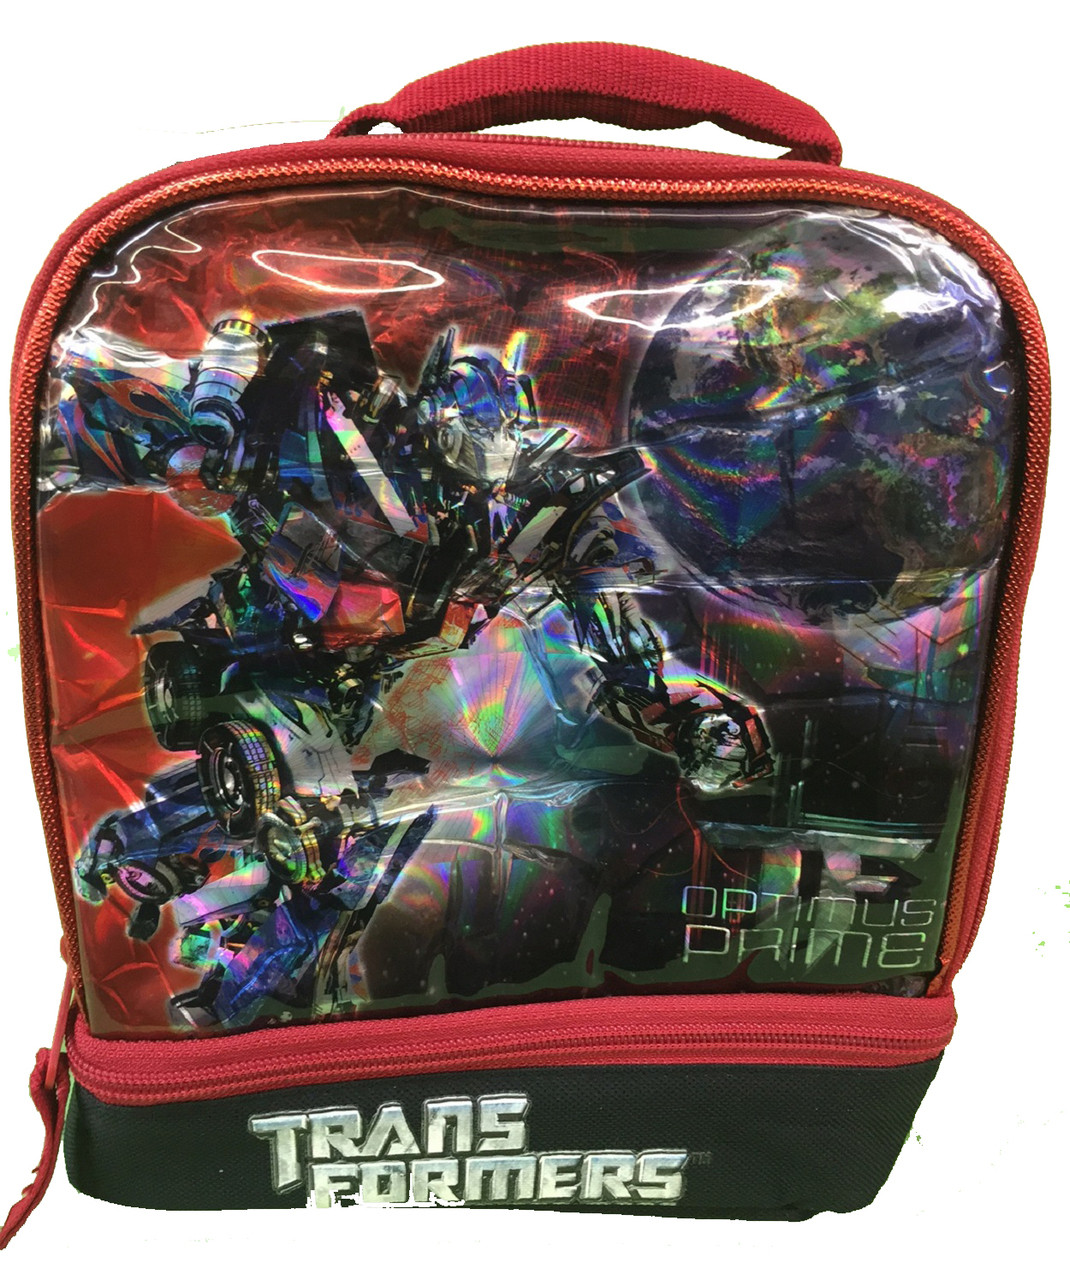 Transformers Dual Compartment Lunch Box Lunch Bag - Optimus Prime